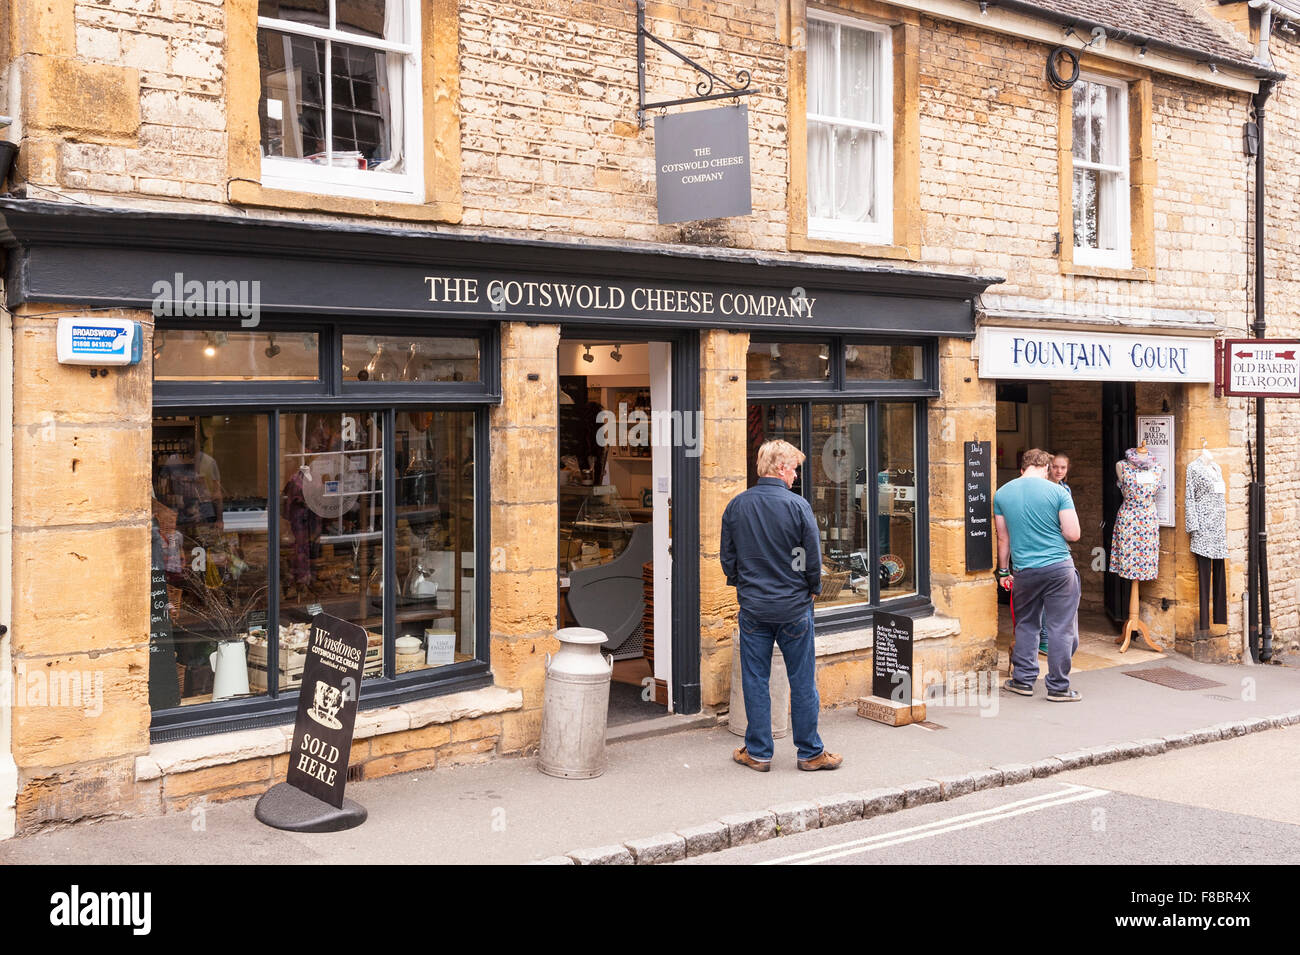 the cotswold cheese company shop store at stow on the wold stock photo royalty free image. Black Bedroom Furniture Sets. Home Design Ideas